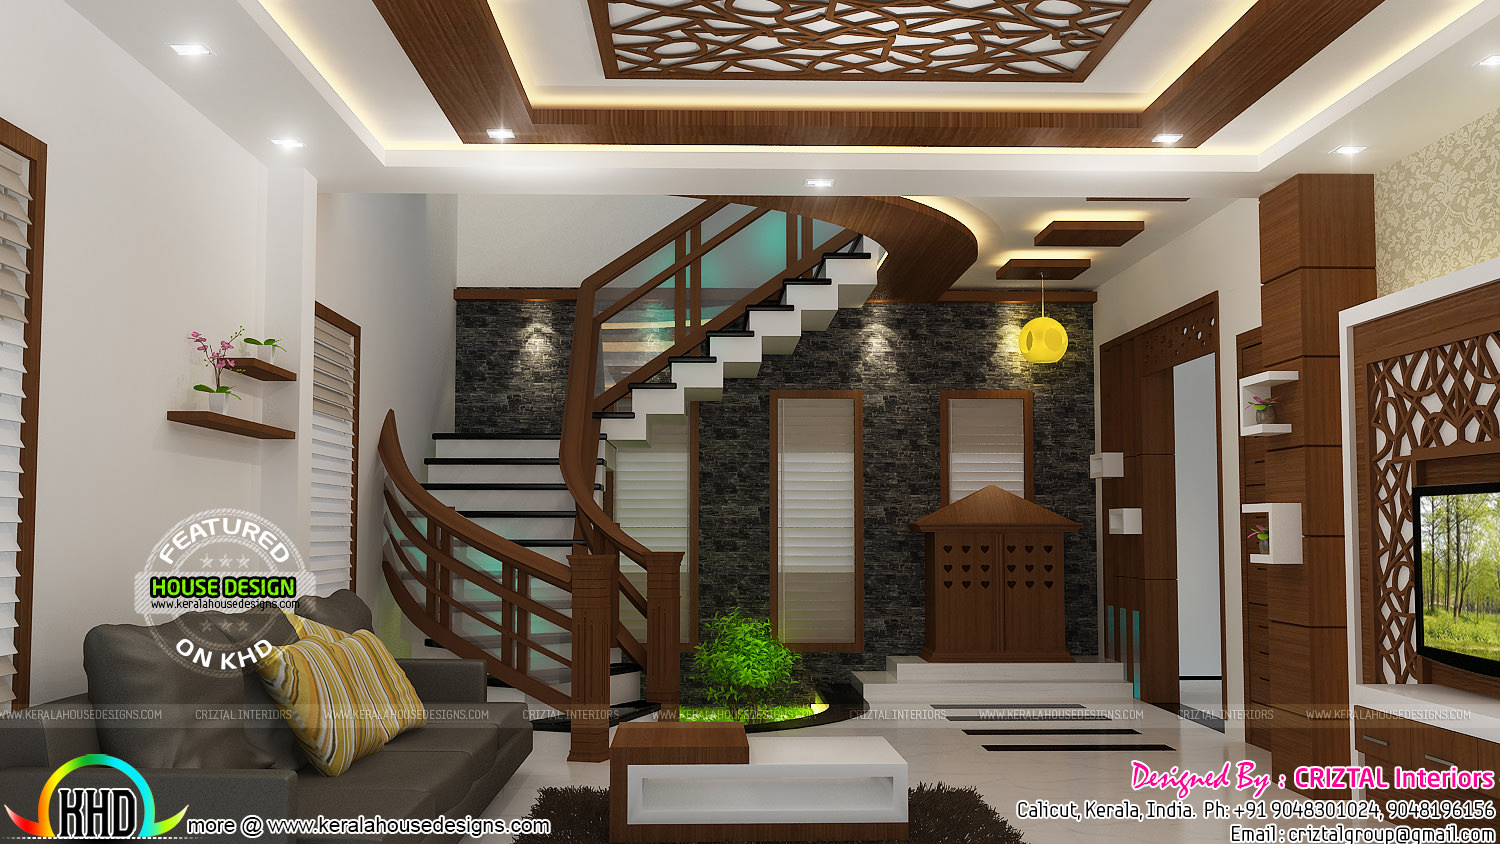 Bedroom dining hall and living interior kerala home for Dining hall interior design